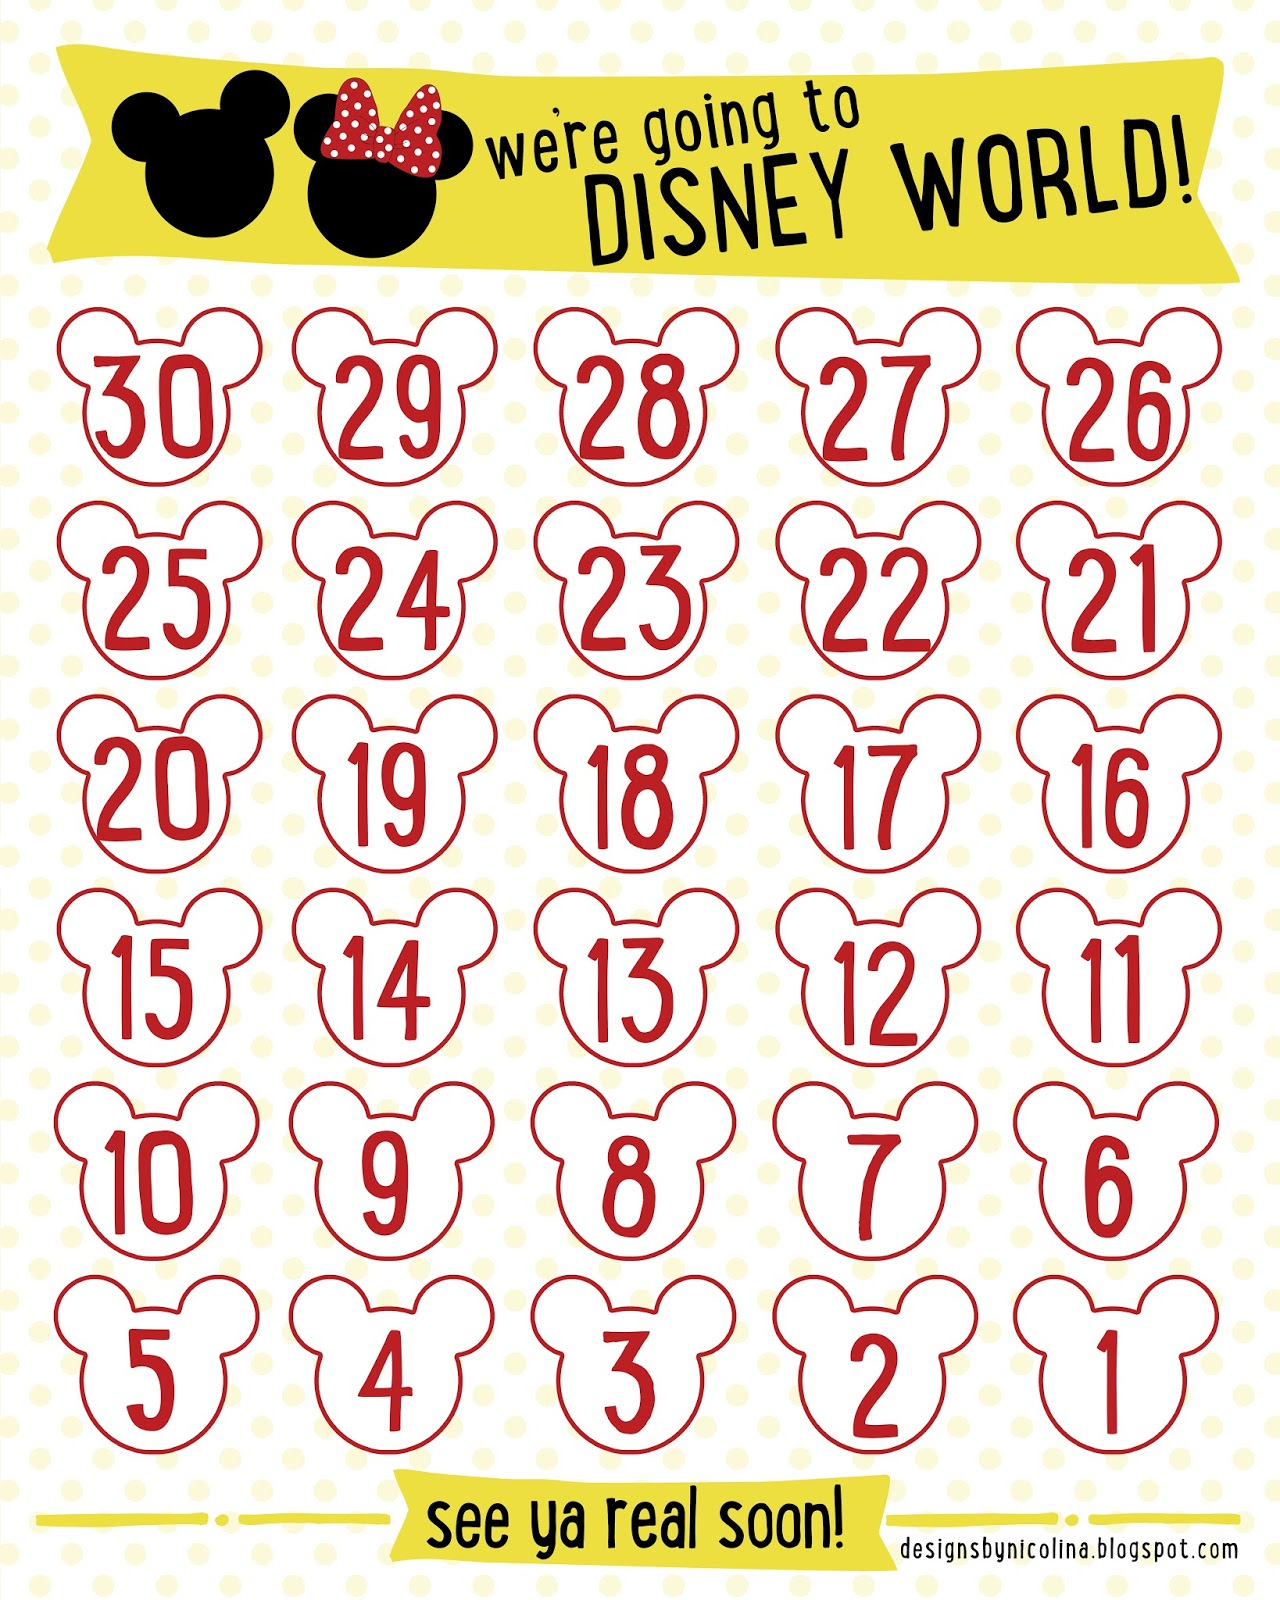 photograph regarding Countdown Calendar Printable referred to as options by means of nicolina: DISNEY COUNTDOWN! /// No cost PRINTABLE ///